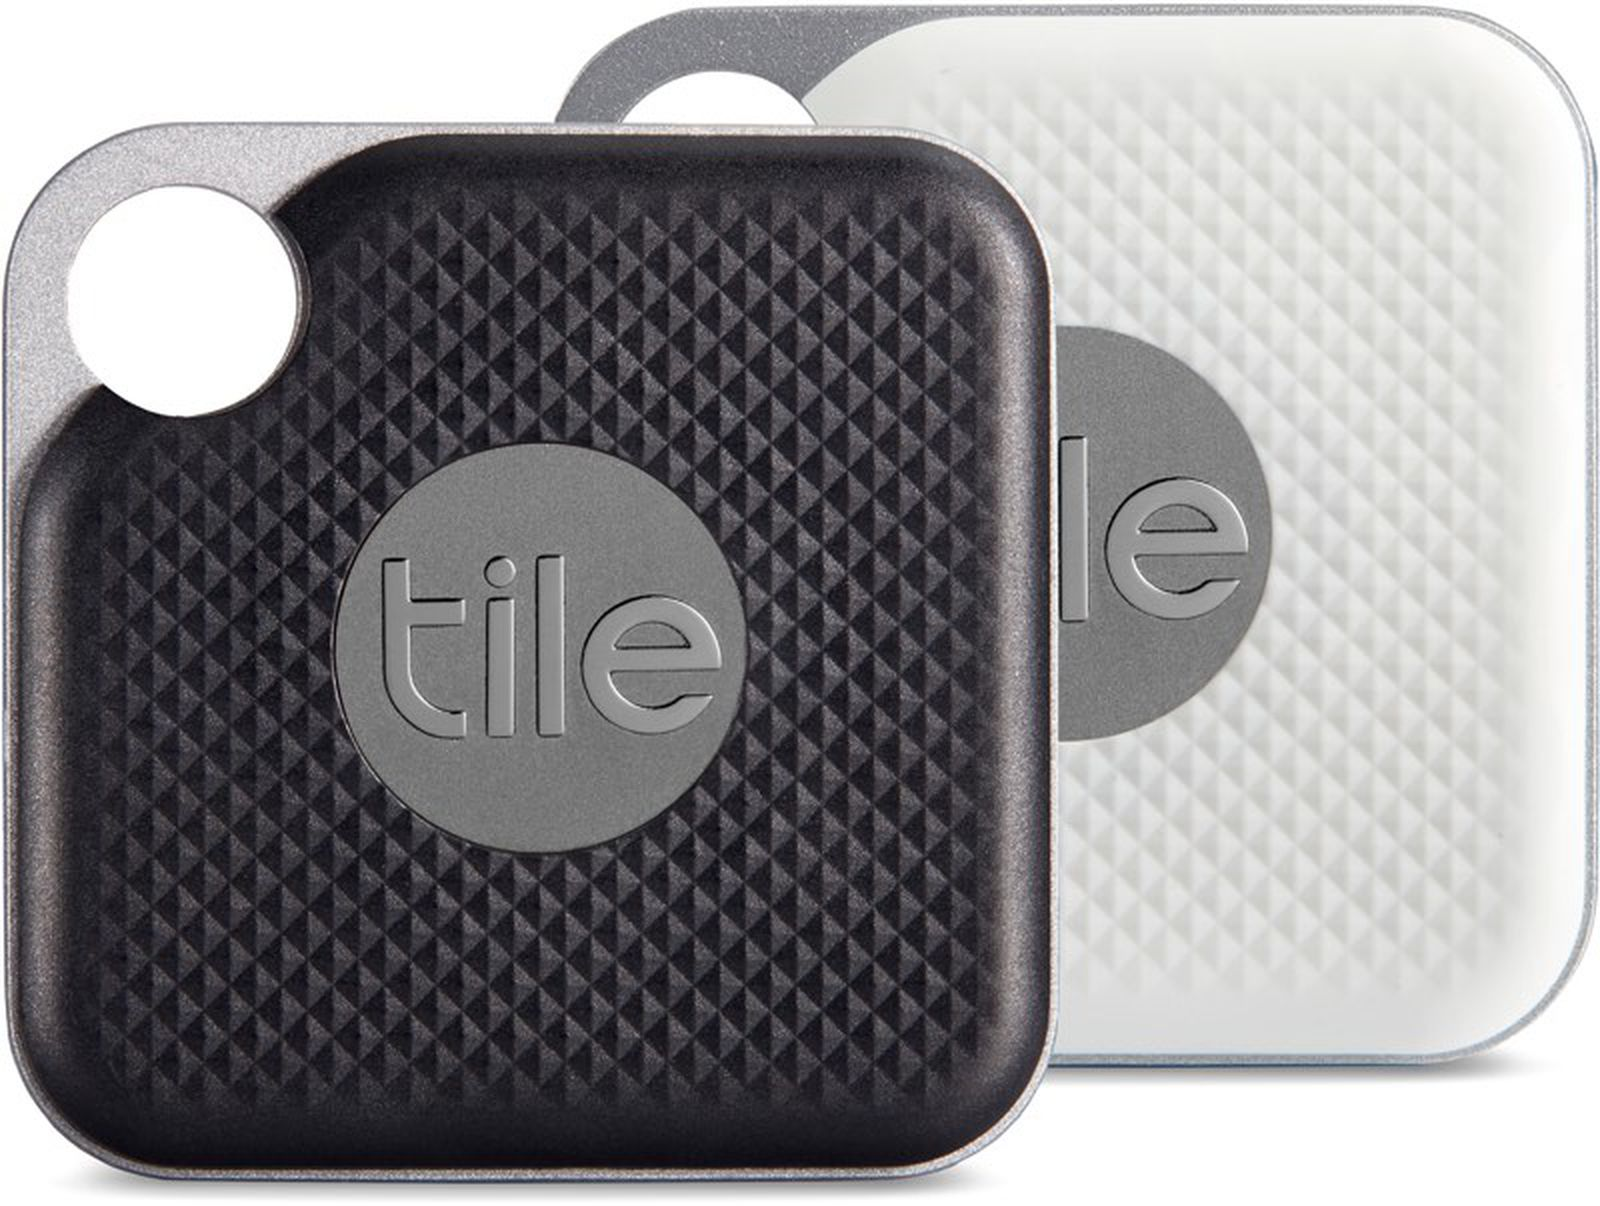 tile launches new premium protect plan